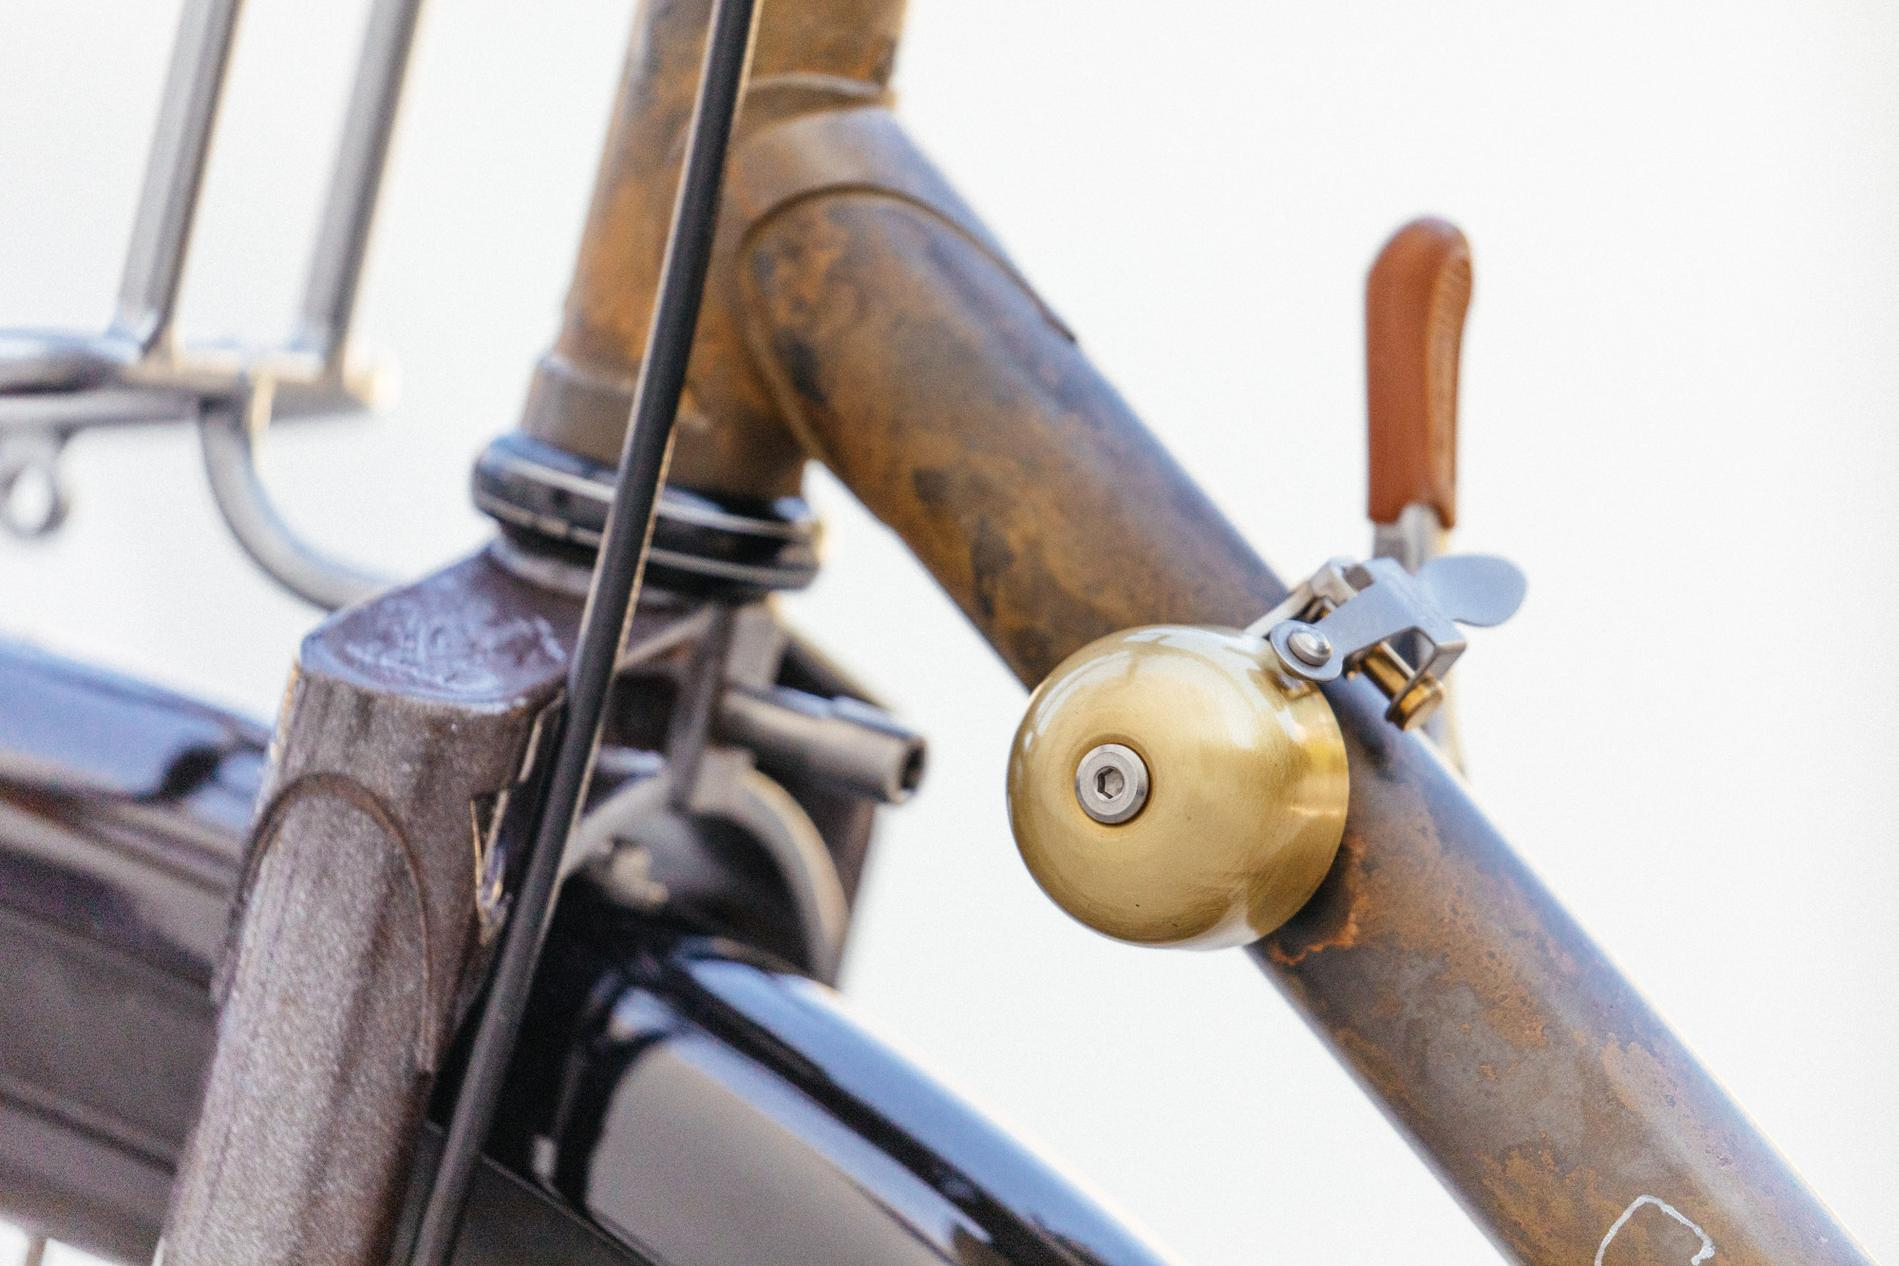 Golden Saddle Rides: Scott's Stripped and Raw Crust Bikes Romanceur